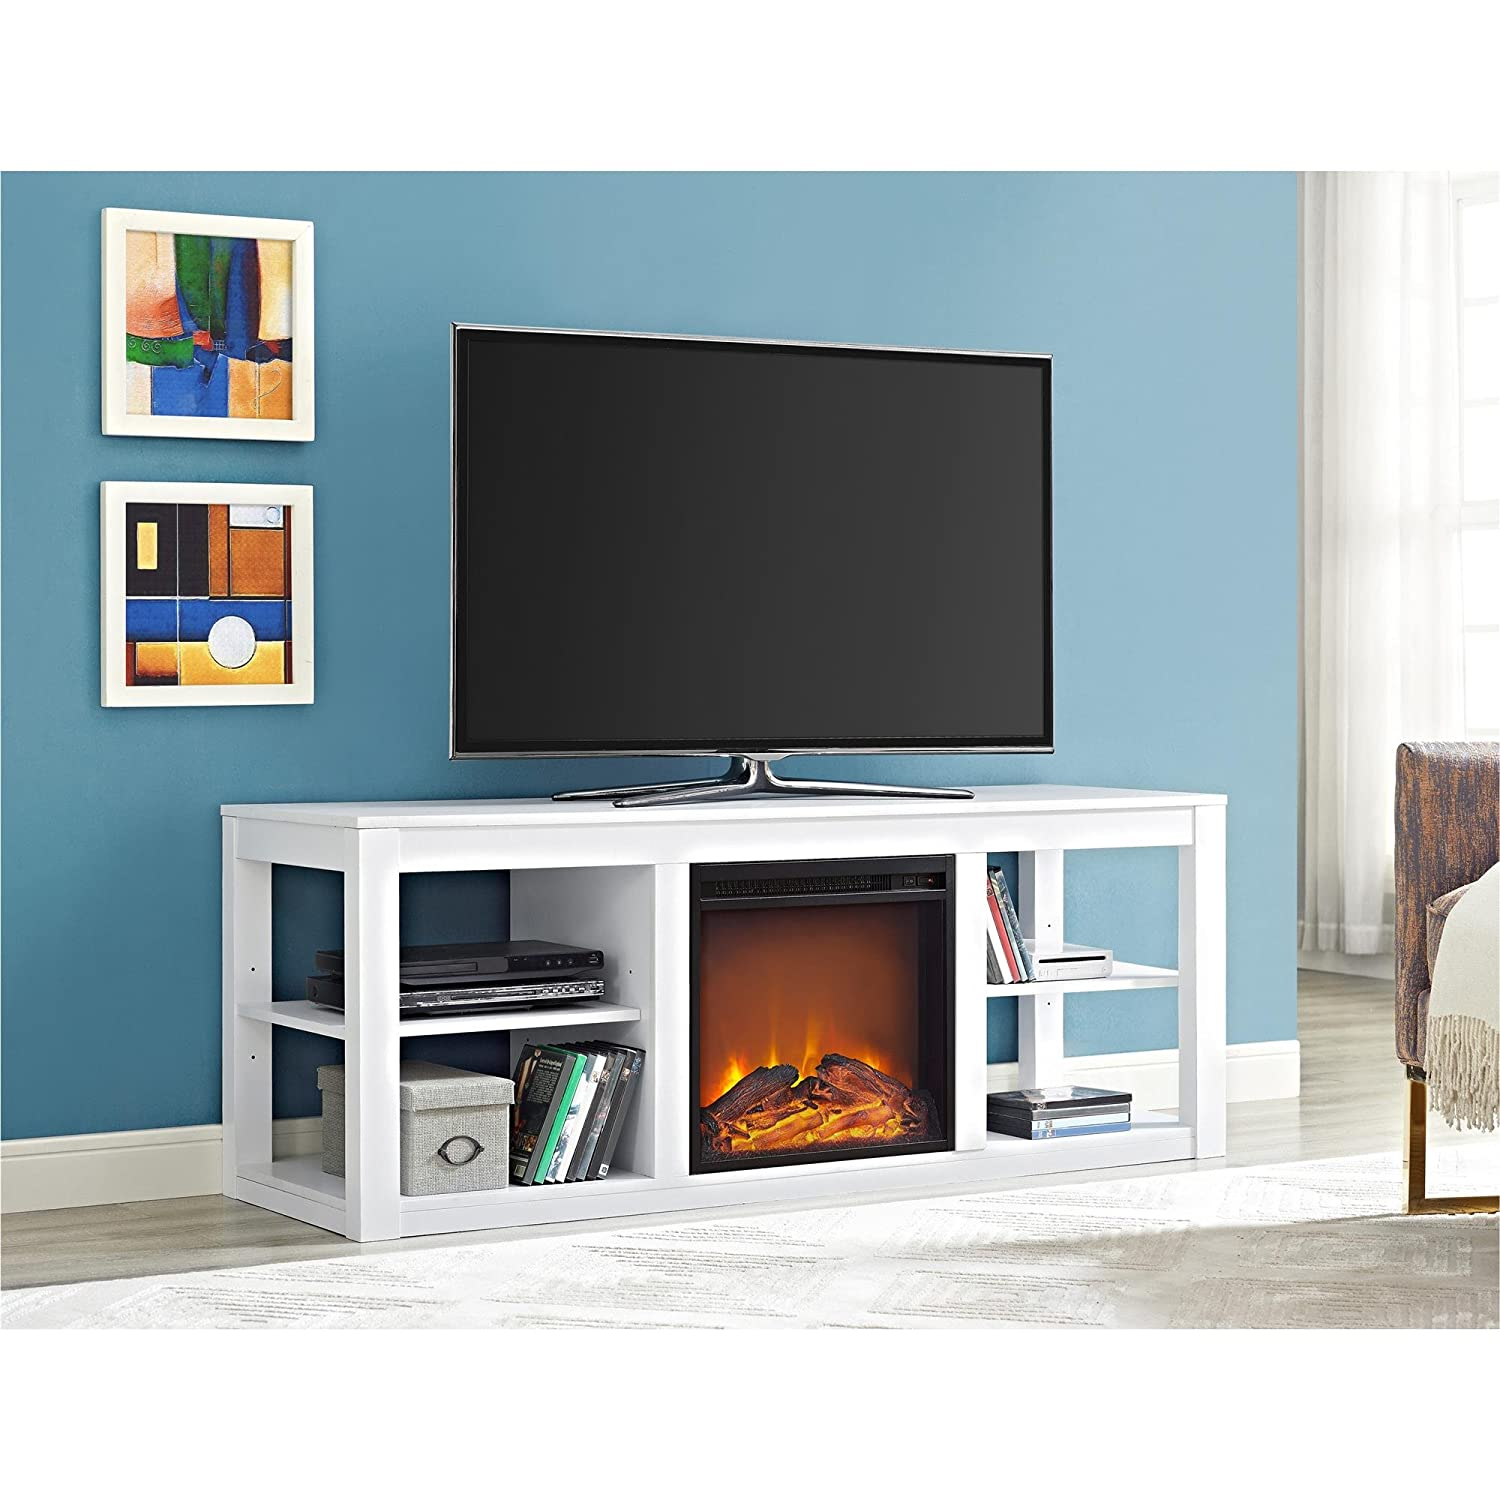 anniston wayfair white fireplace tv stand homestar electric furniture reviews media pdx